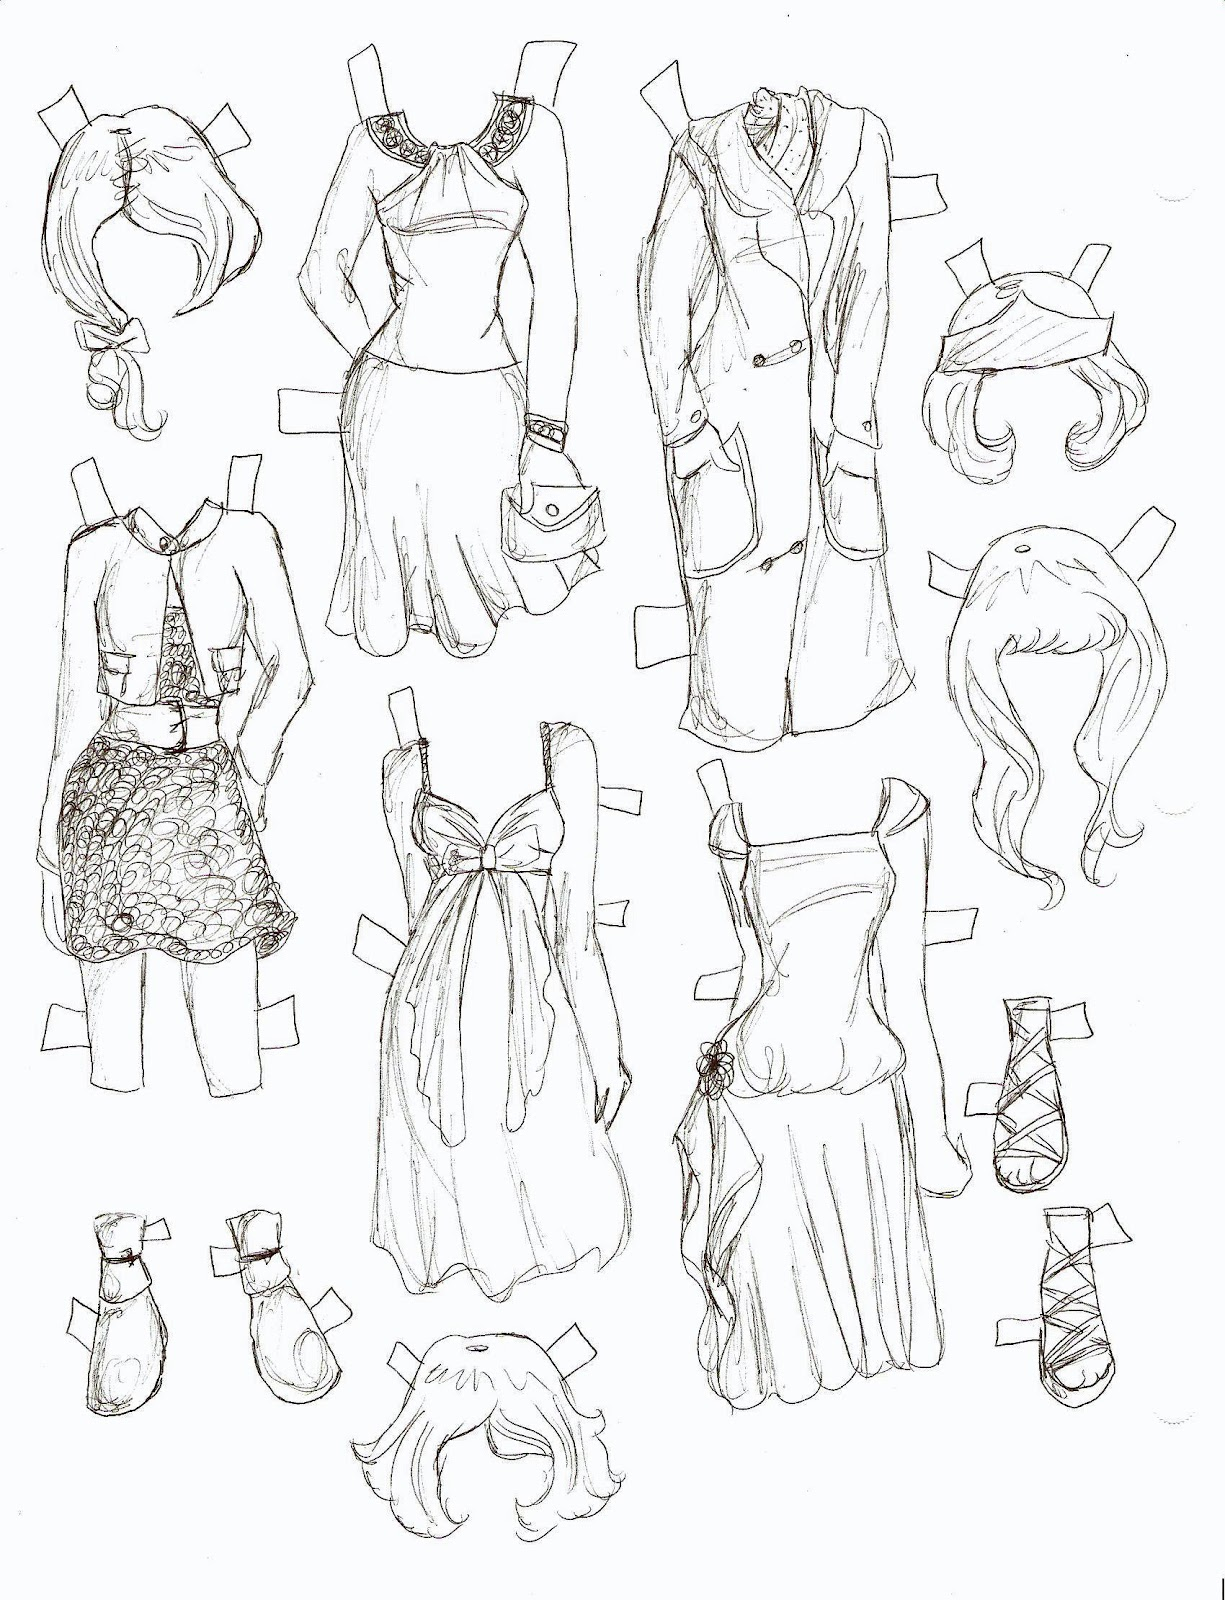 Hairstyles This Is  The Black And White Sketch Version Her Outfits